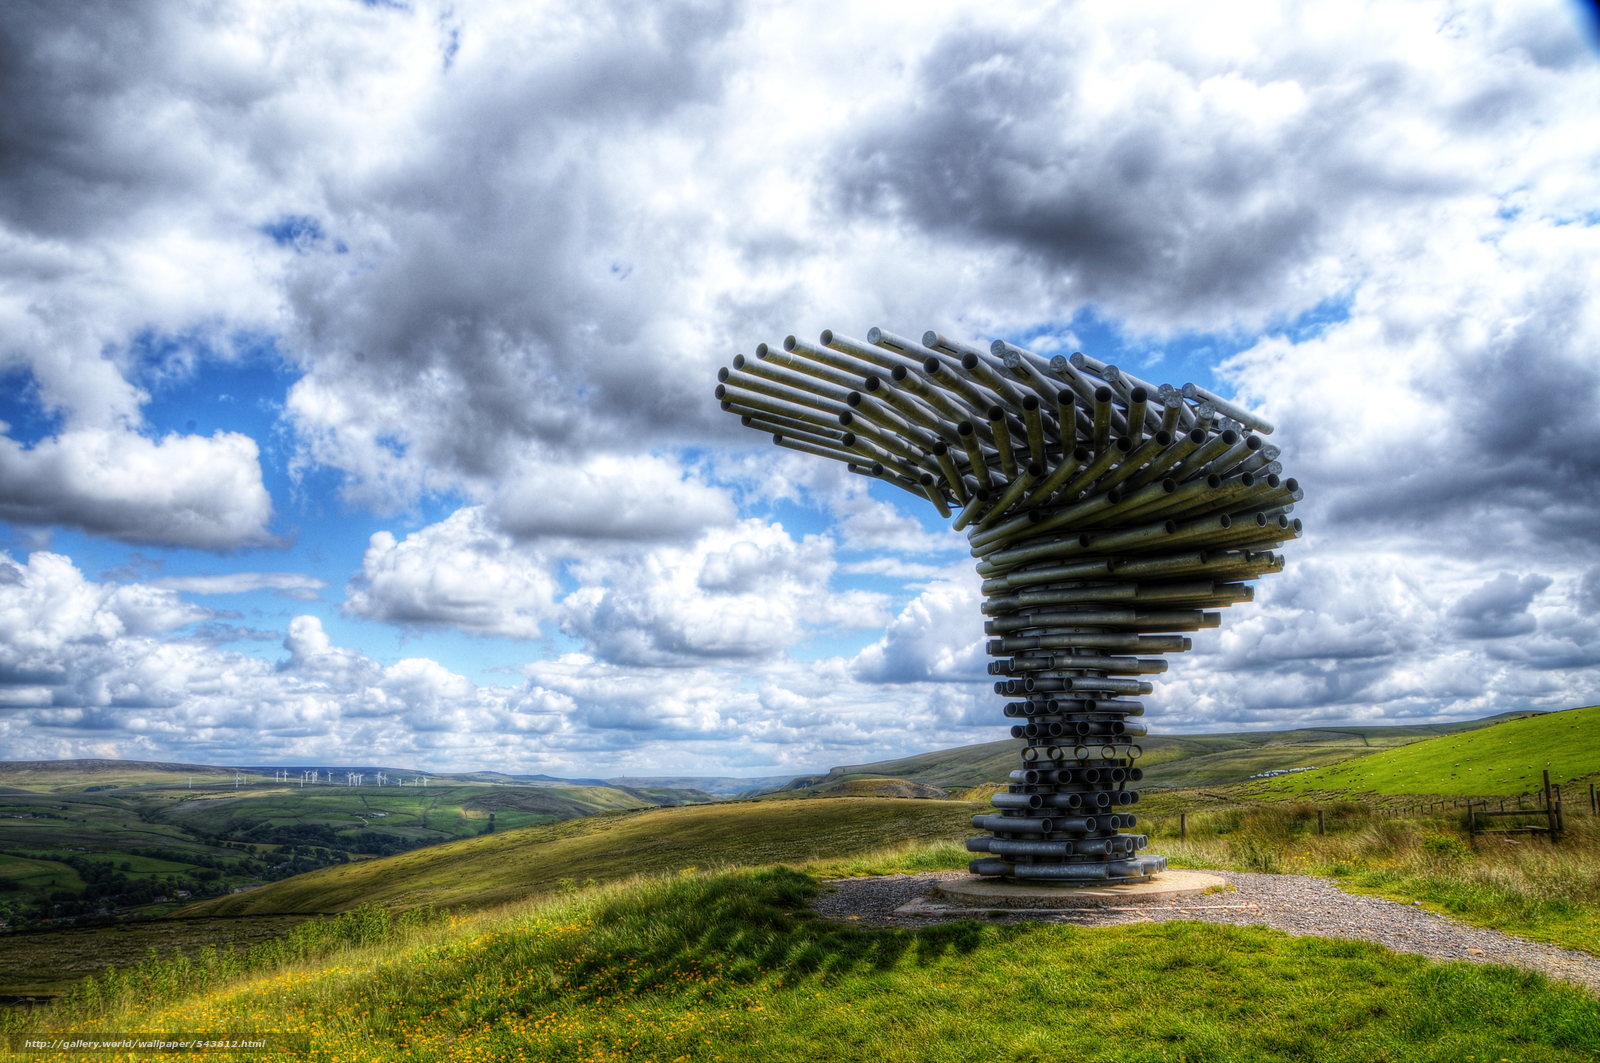 Where Is The Singing Ringing Tree